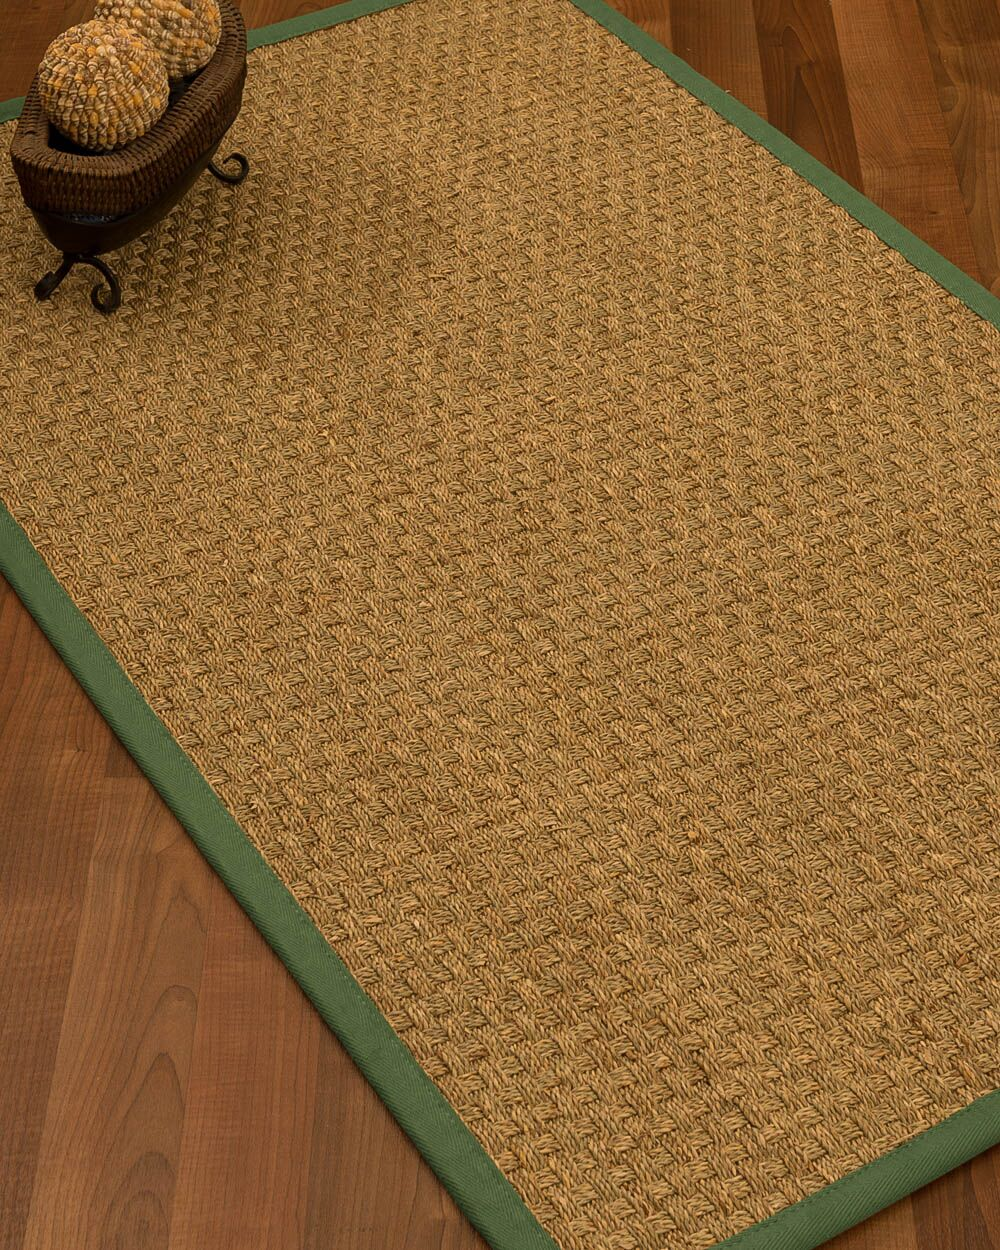 Antiqua Border Hand-Woven Beige/Green Area Rug Rug Pad Included: No, Rug Size: Runner 2'6